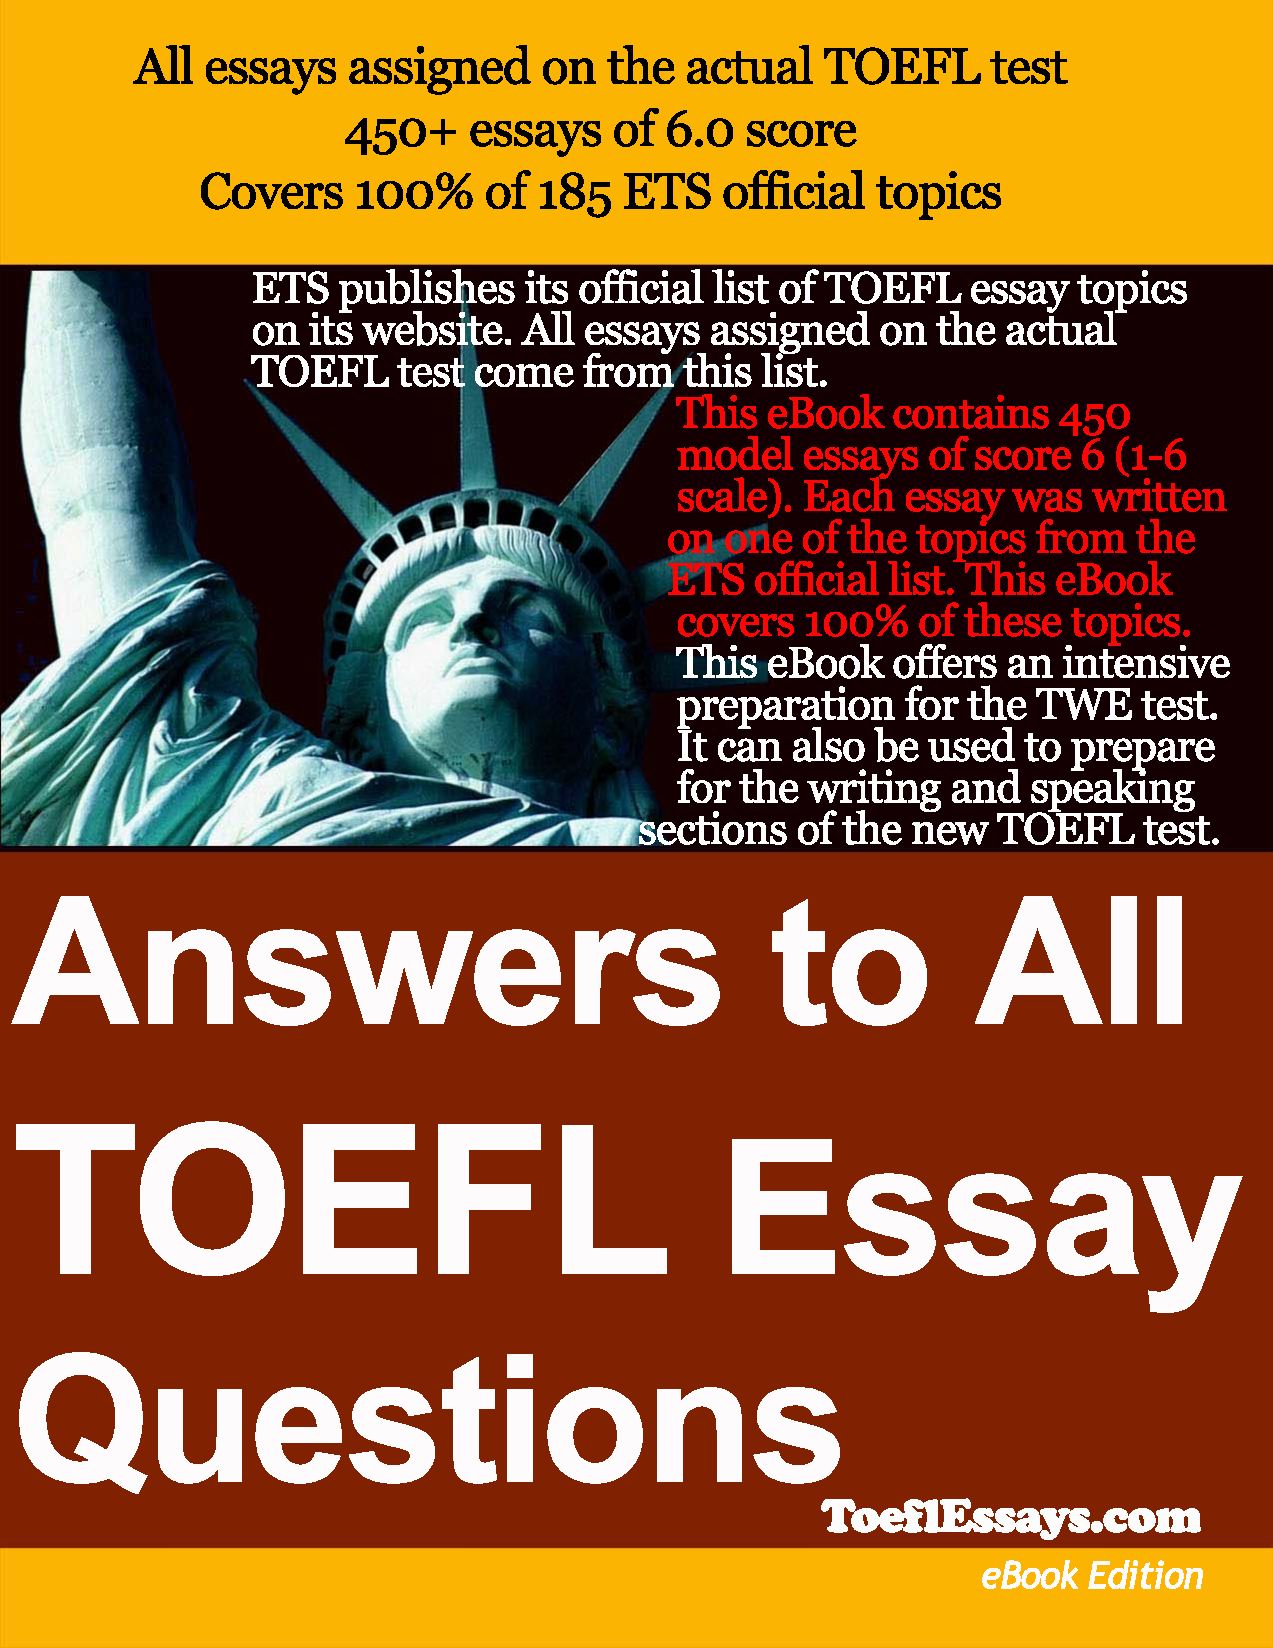 paradise lost essay questions informative essay prompts  all essay topics all quiet on the western front essay topics answers to all toefl essay